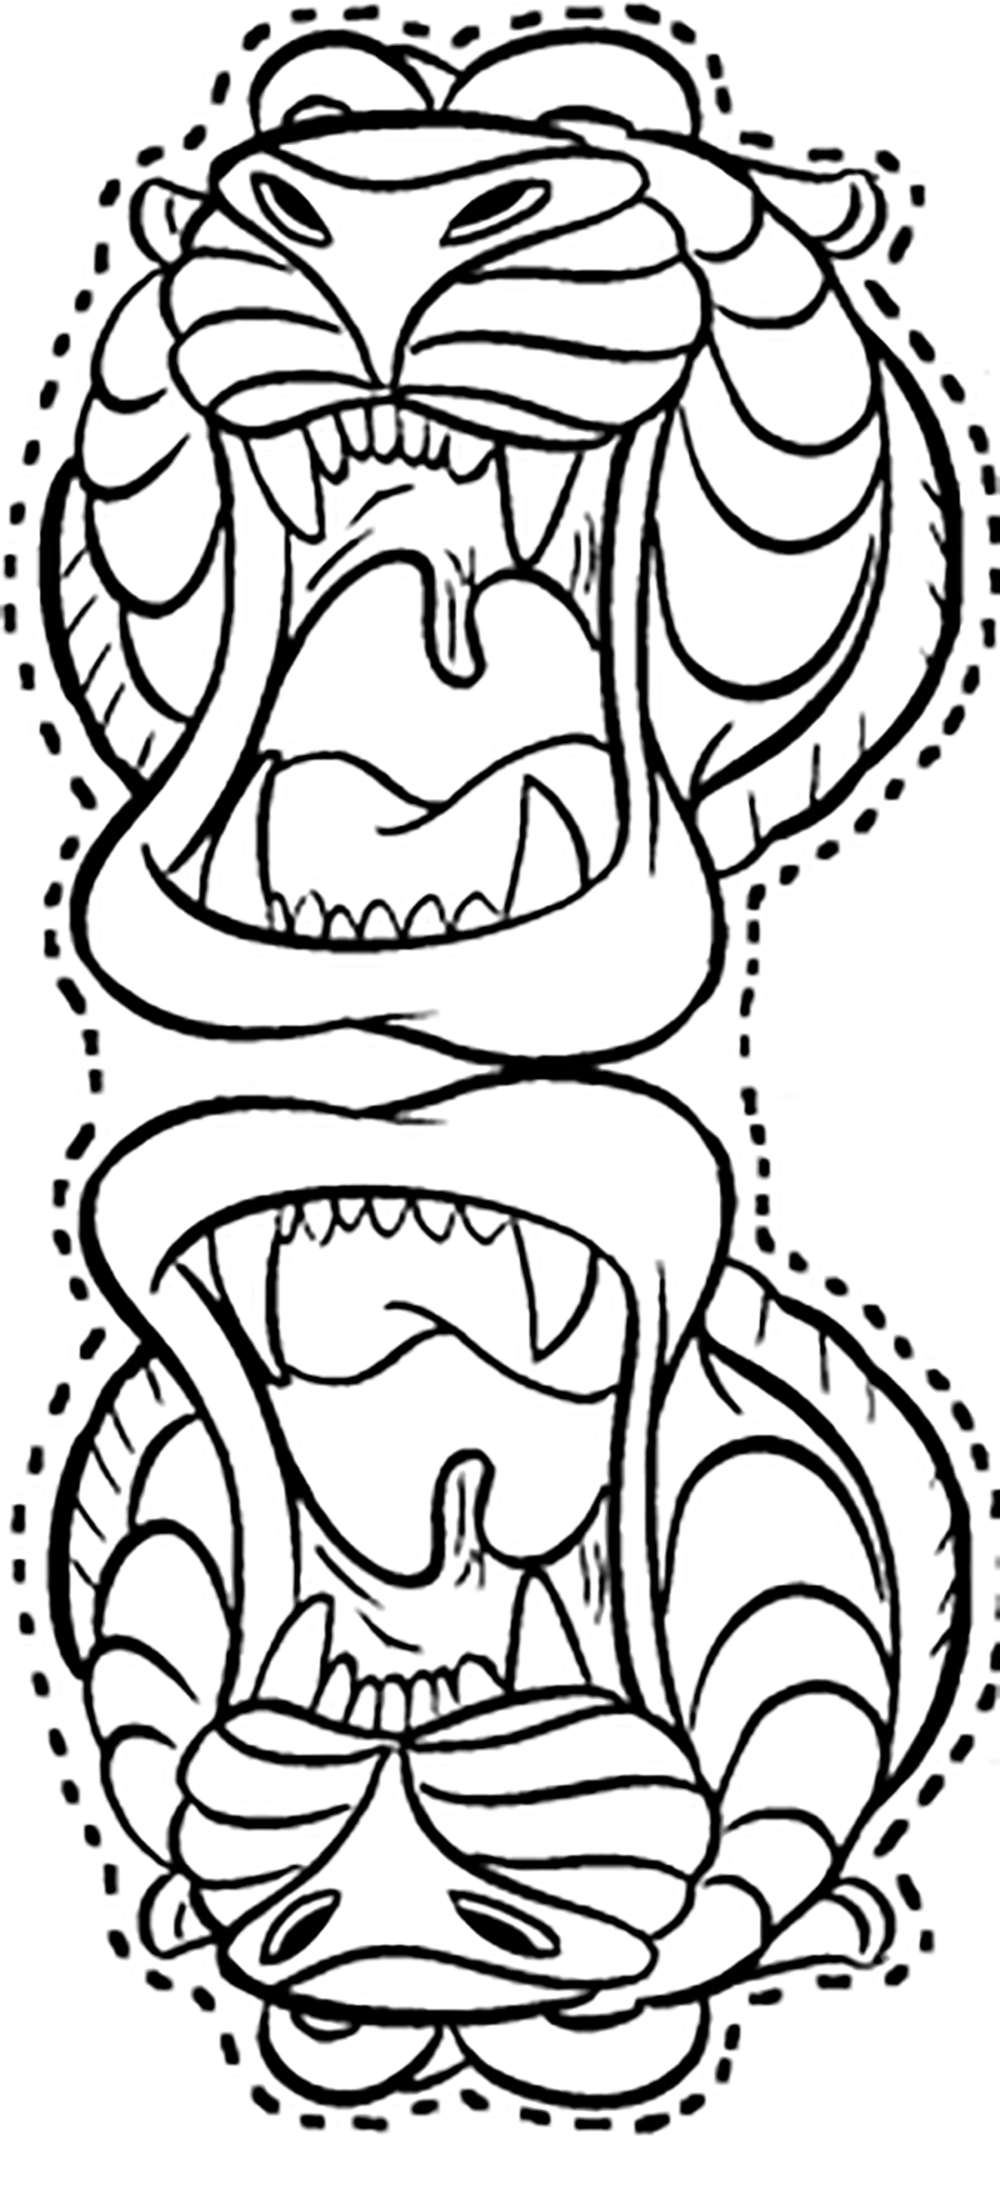 Aladdin Cave Of Wonders Coloring Pages For Kids B0b Printable Aladin Coloring Pages For Kids Aladdin Party Coloring Pages Aladdin [ 2185 x 1000 Pixel ]